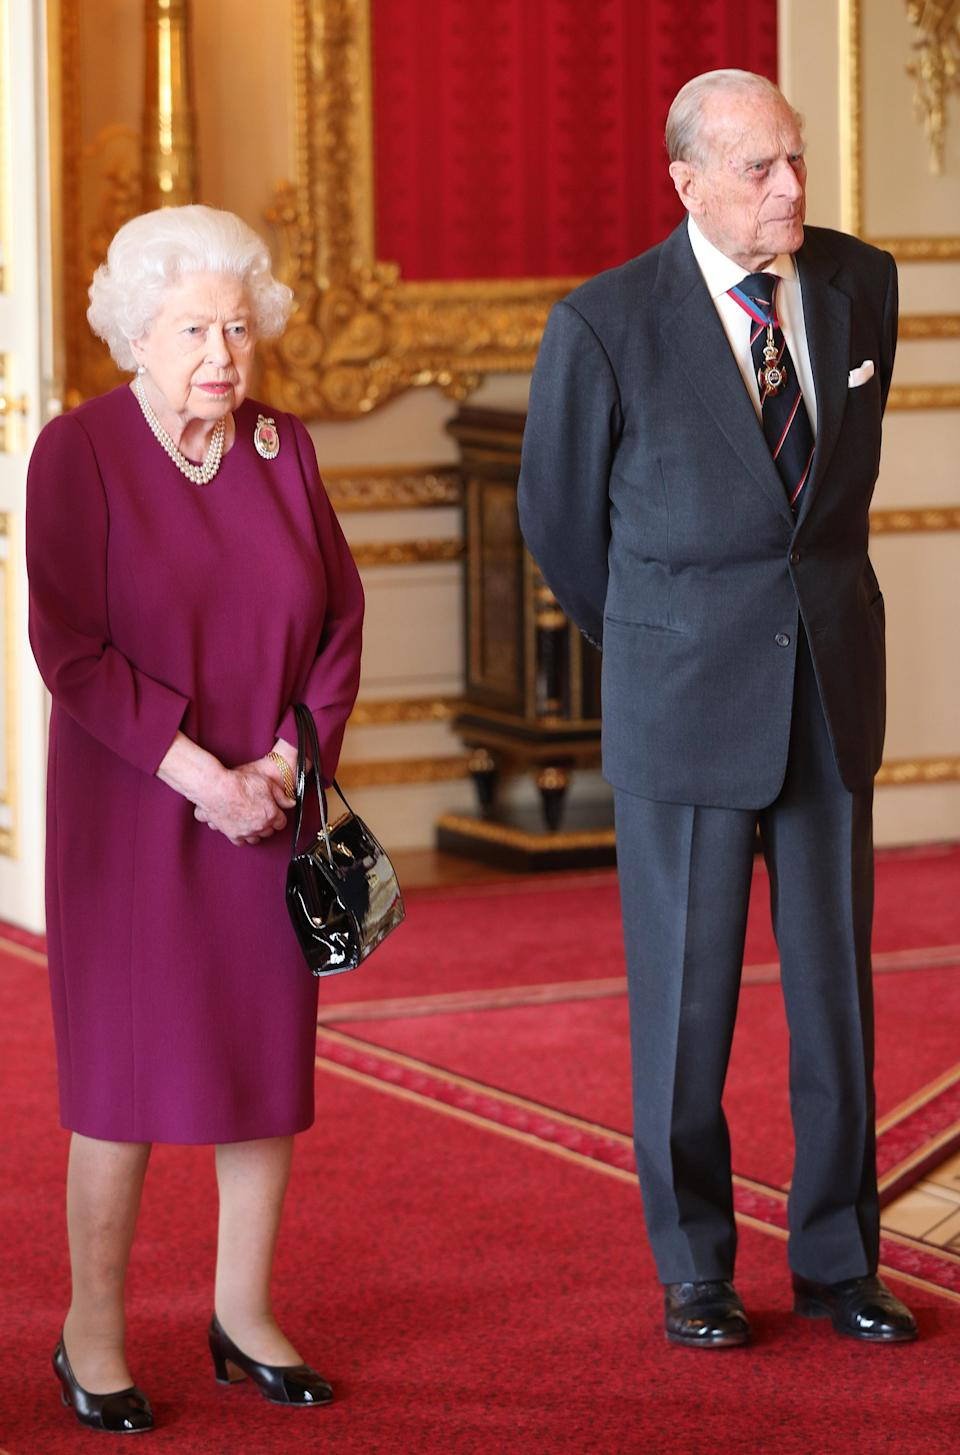 Queen Elizabeth II and Prince Philip join members of the Order of Merit at Windsor Castle in 2019. (Getty Images)